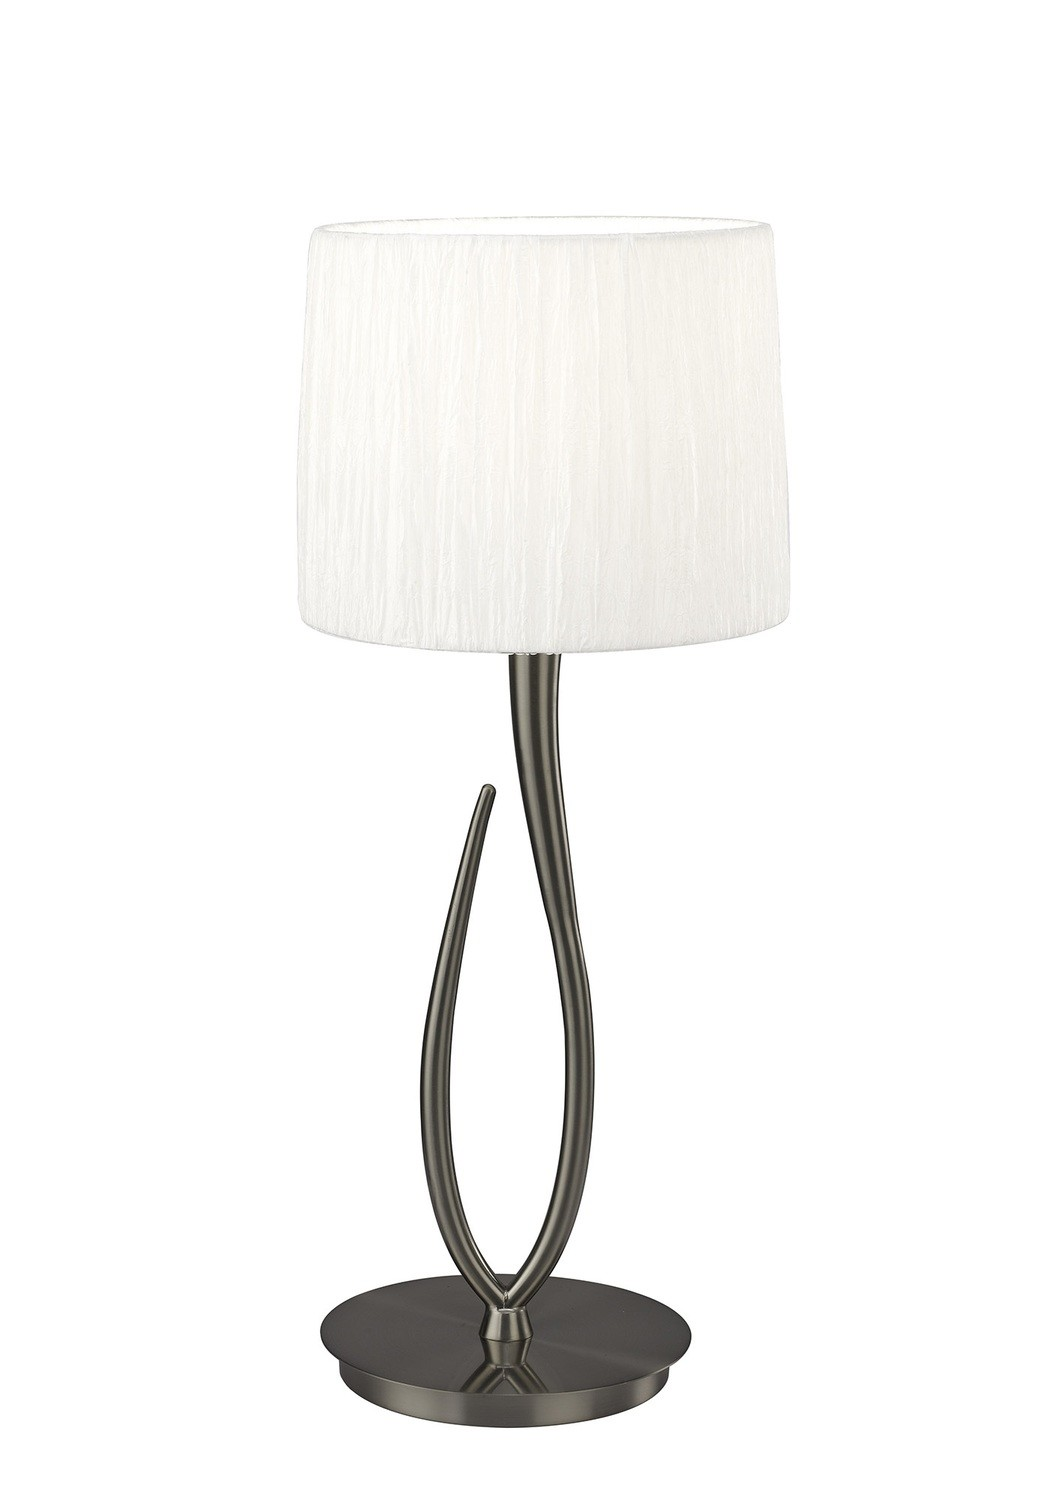 Lua Table Lamp 1 Light E27, Satin Nickel Large With White Shade